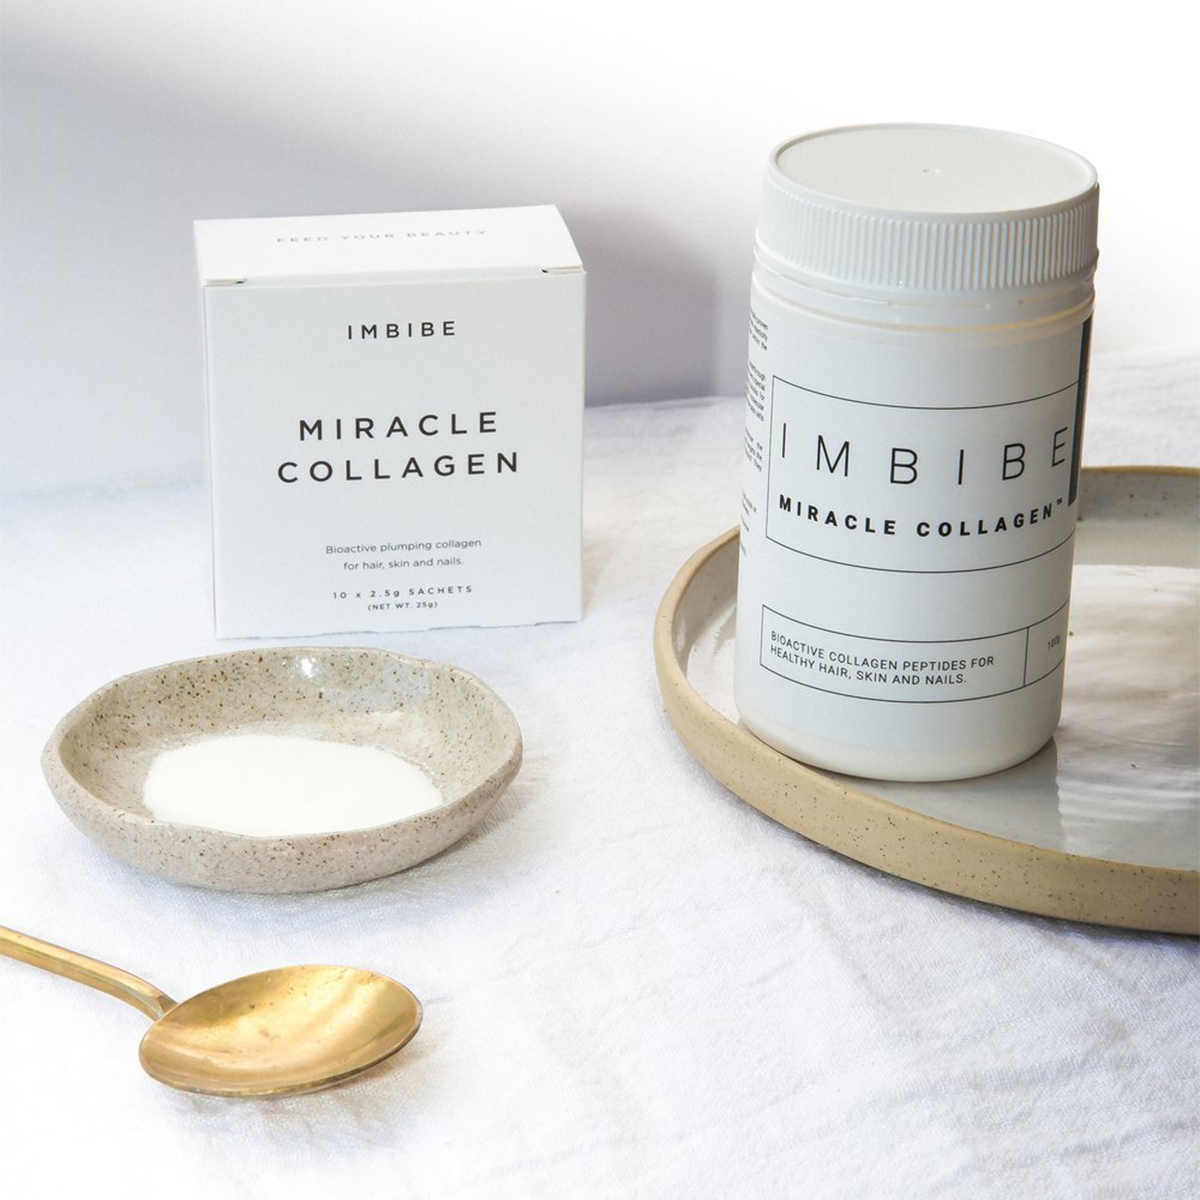 a jar of imbibe collagen next to a clay bowl